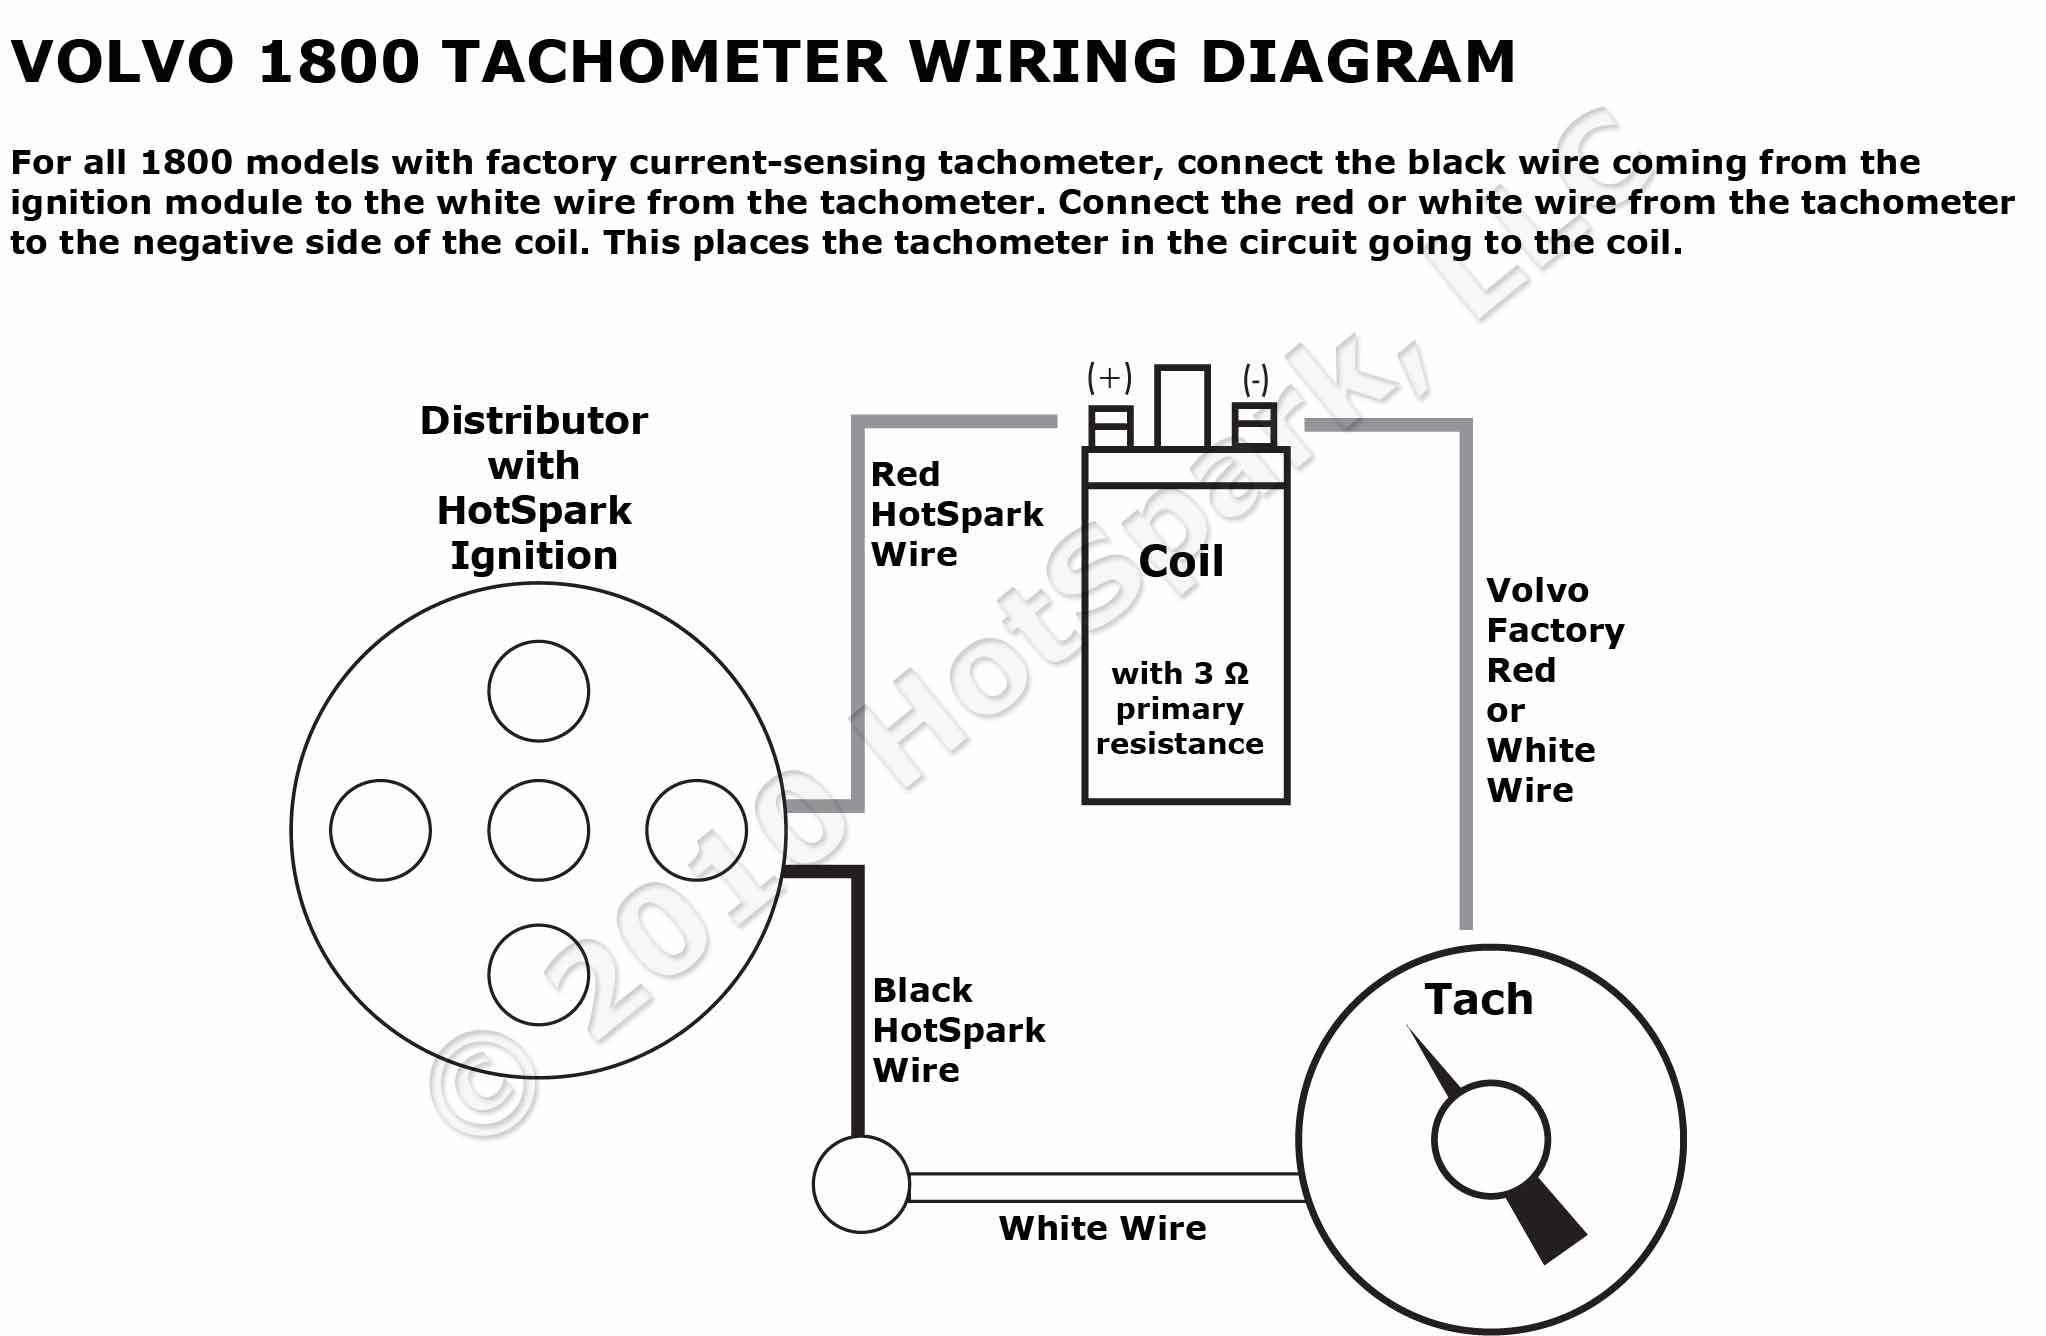 Volvo 1800 Tachometer and Hot Spark Wiring Diagram volvo 1800 tachometer wiring diagram with hotspark ignition electronic ignition wiring diagram at soozxer.org